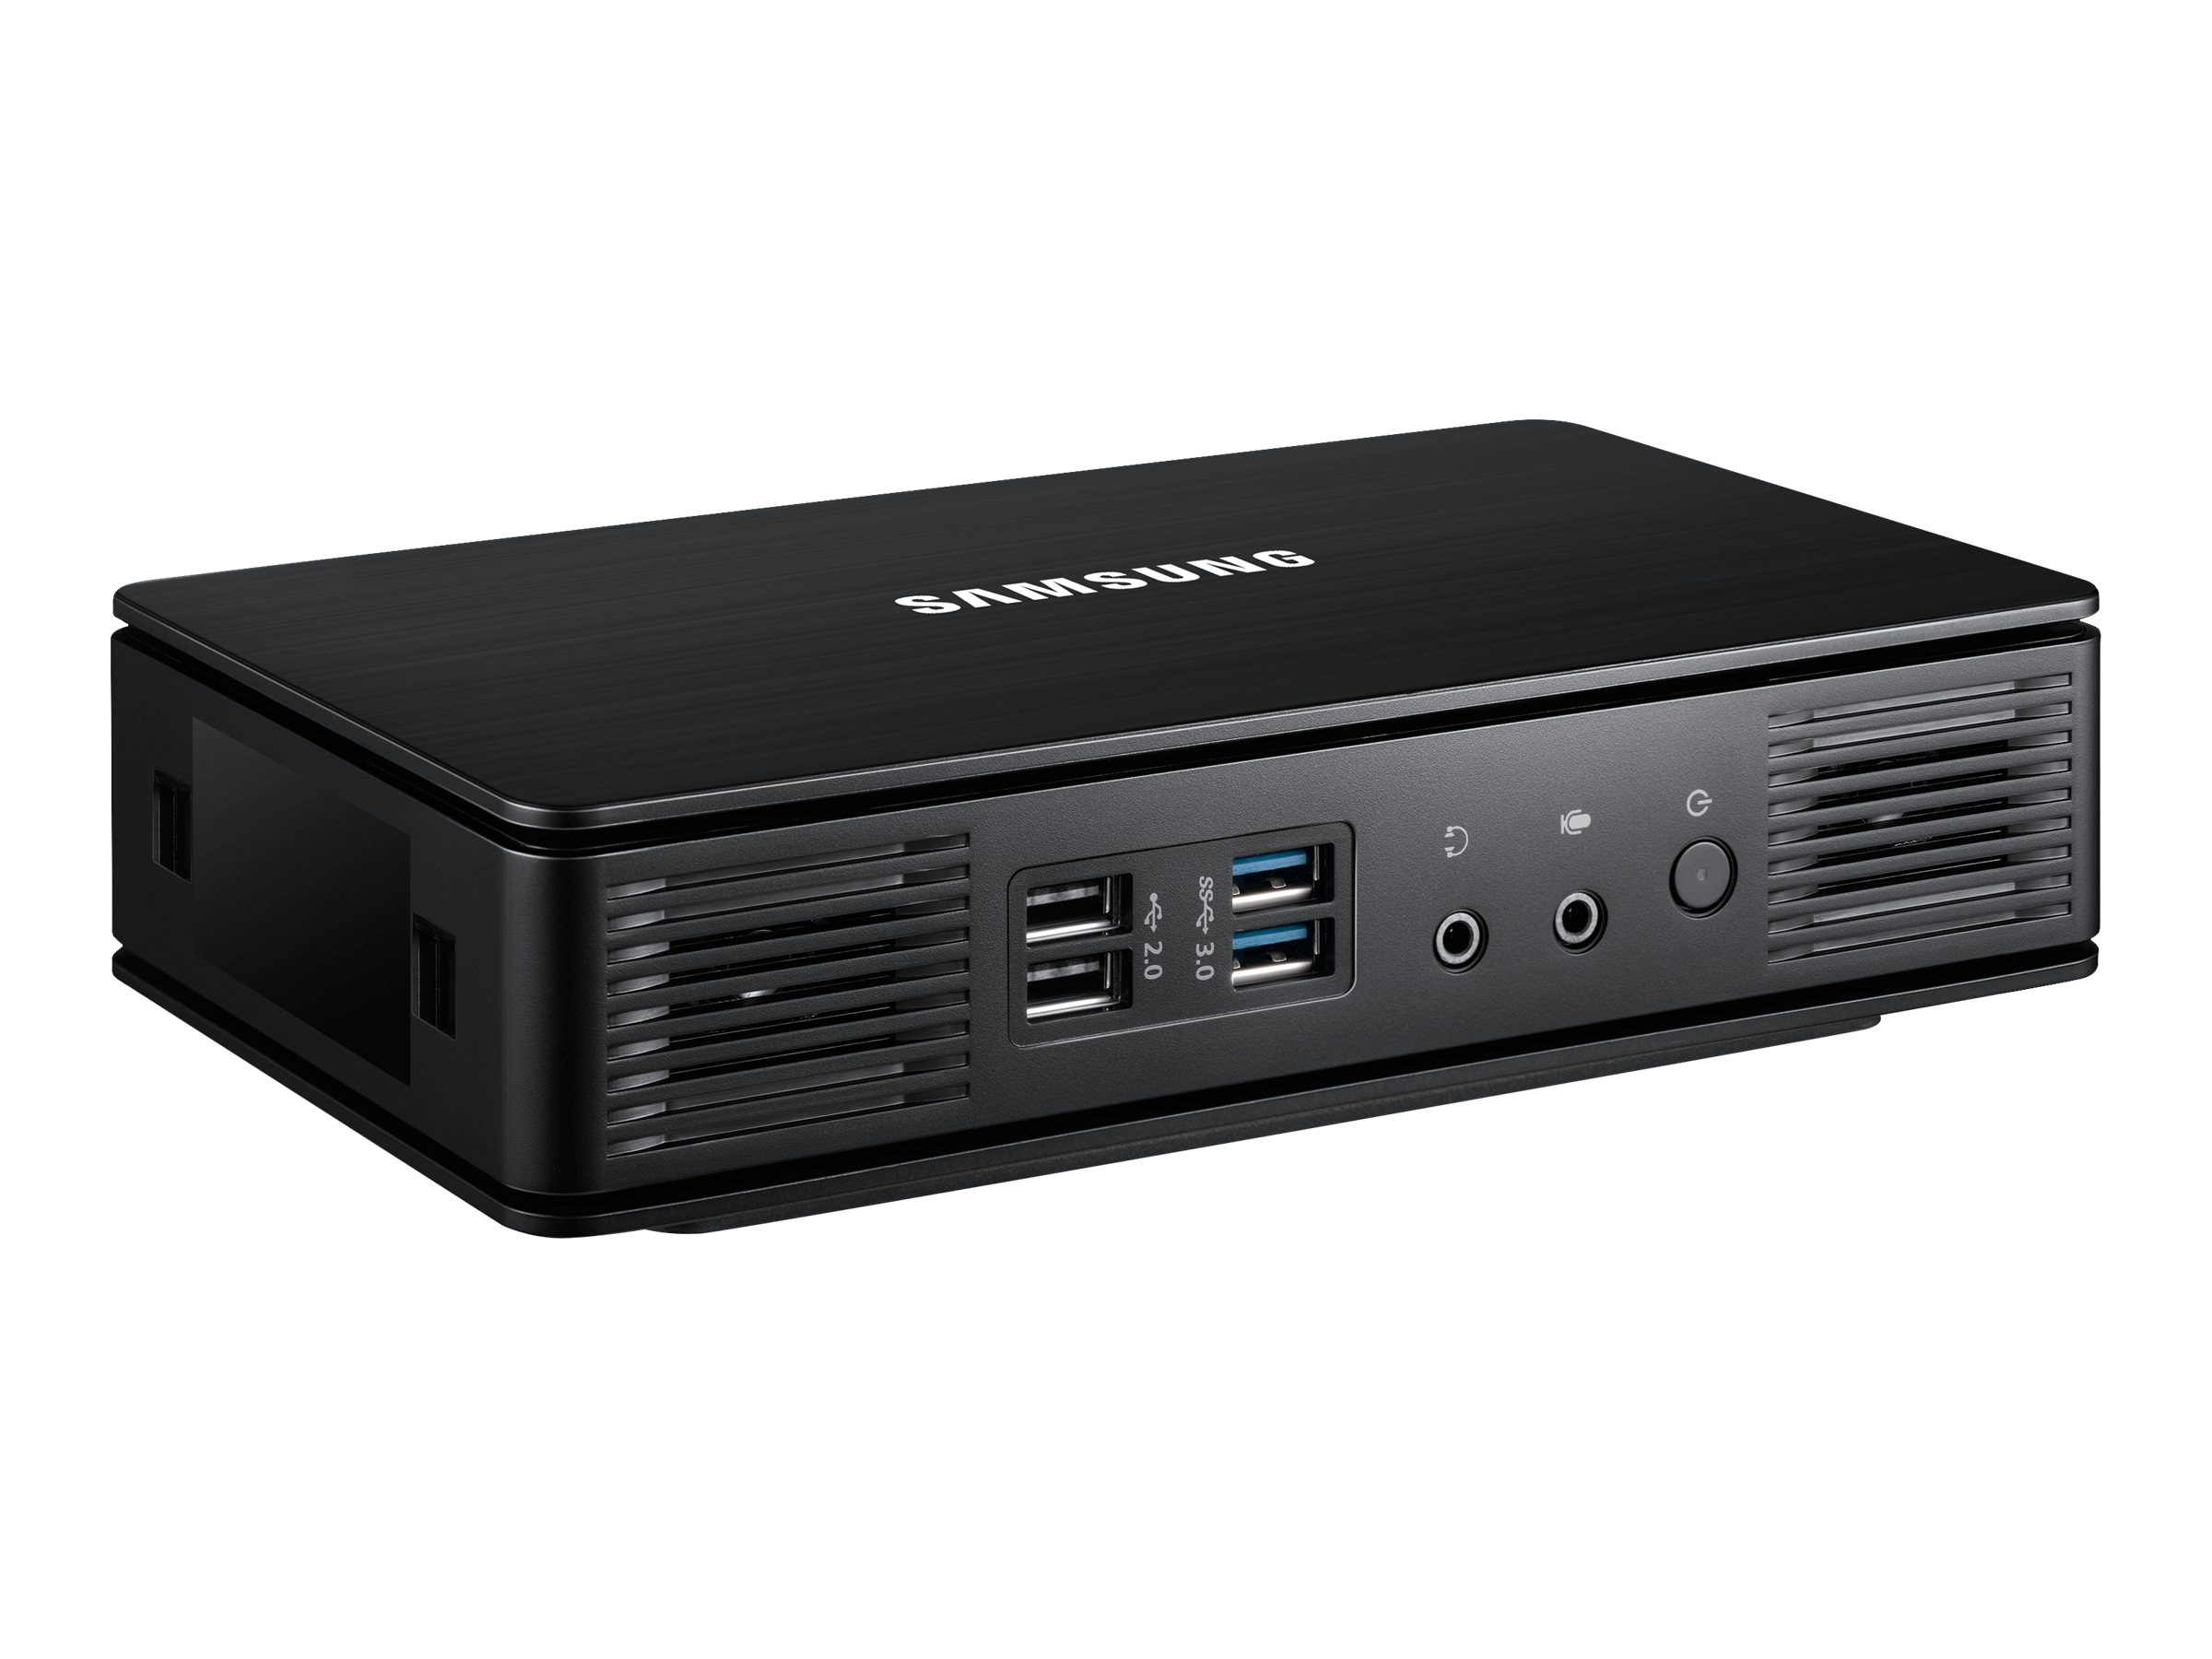 Samsung TX-WN Thin Client AMD Ontario DC 1.0GHz 2GB RAM 16GB Flash GbE WES7, TX-WN